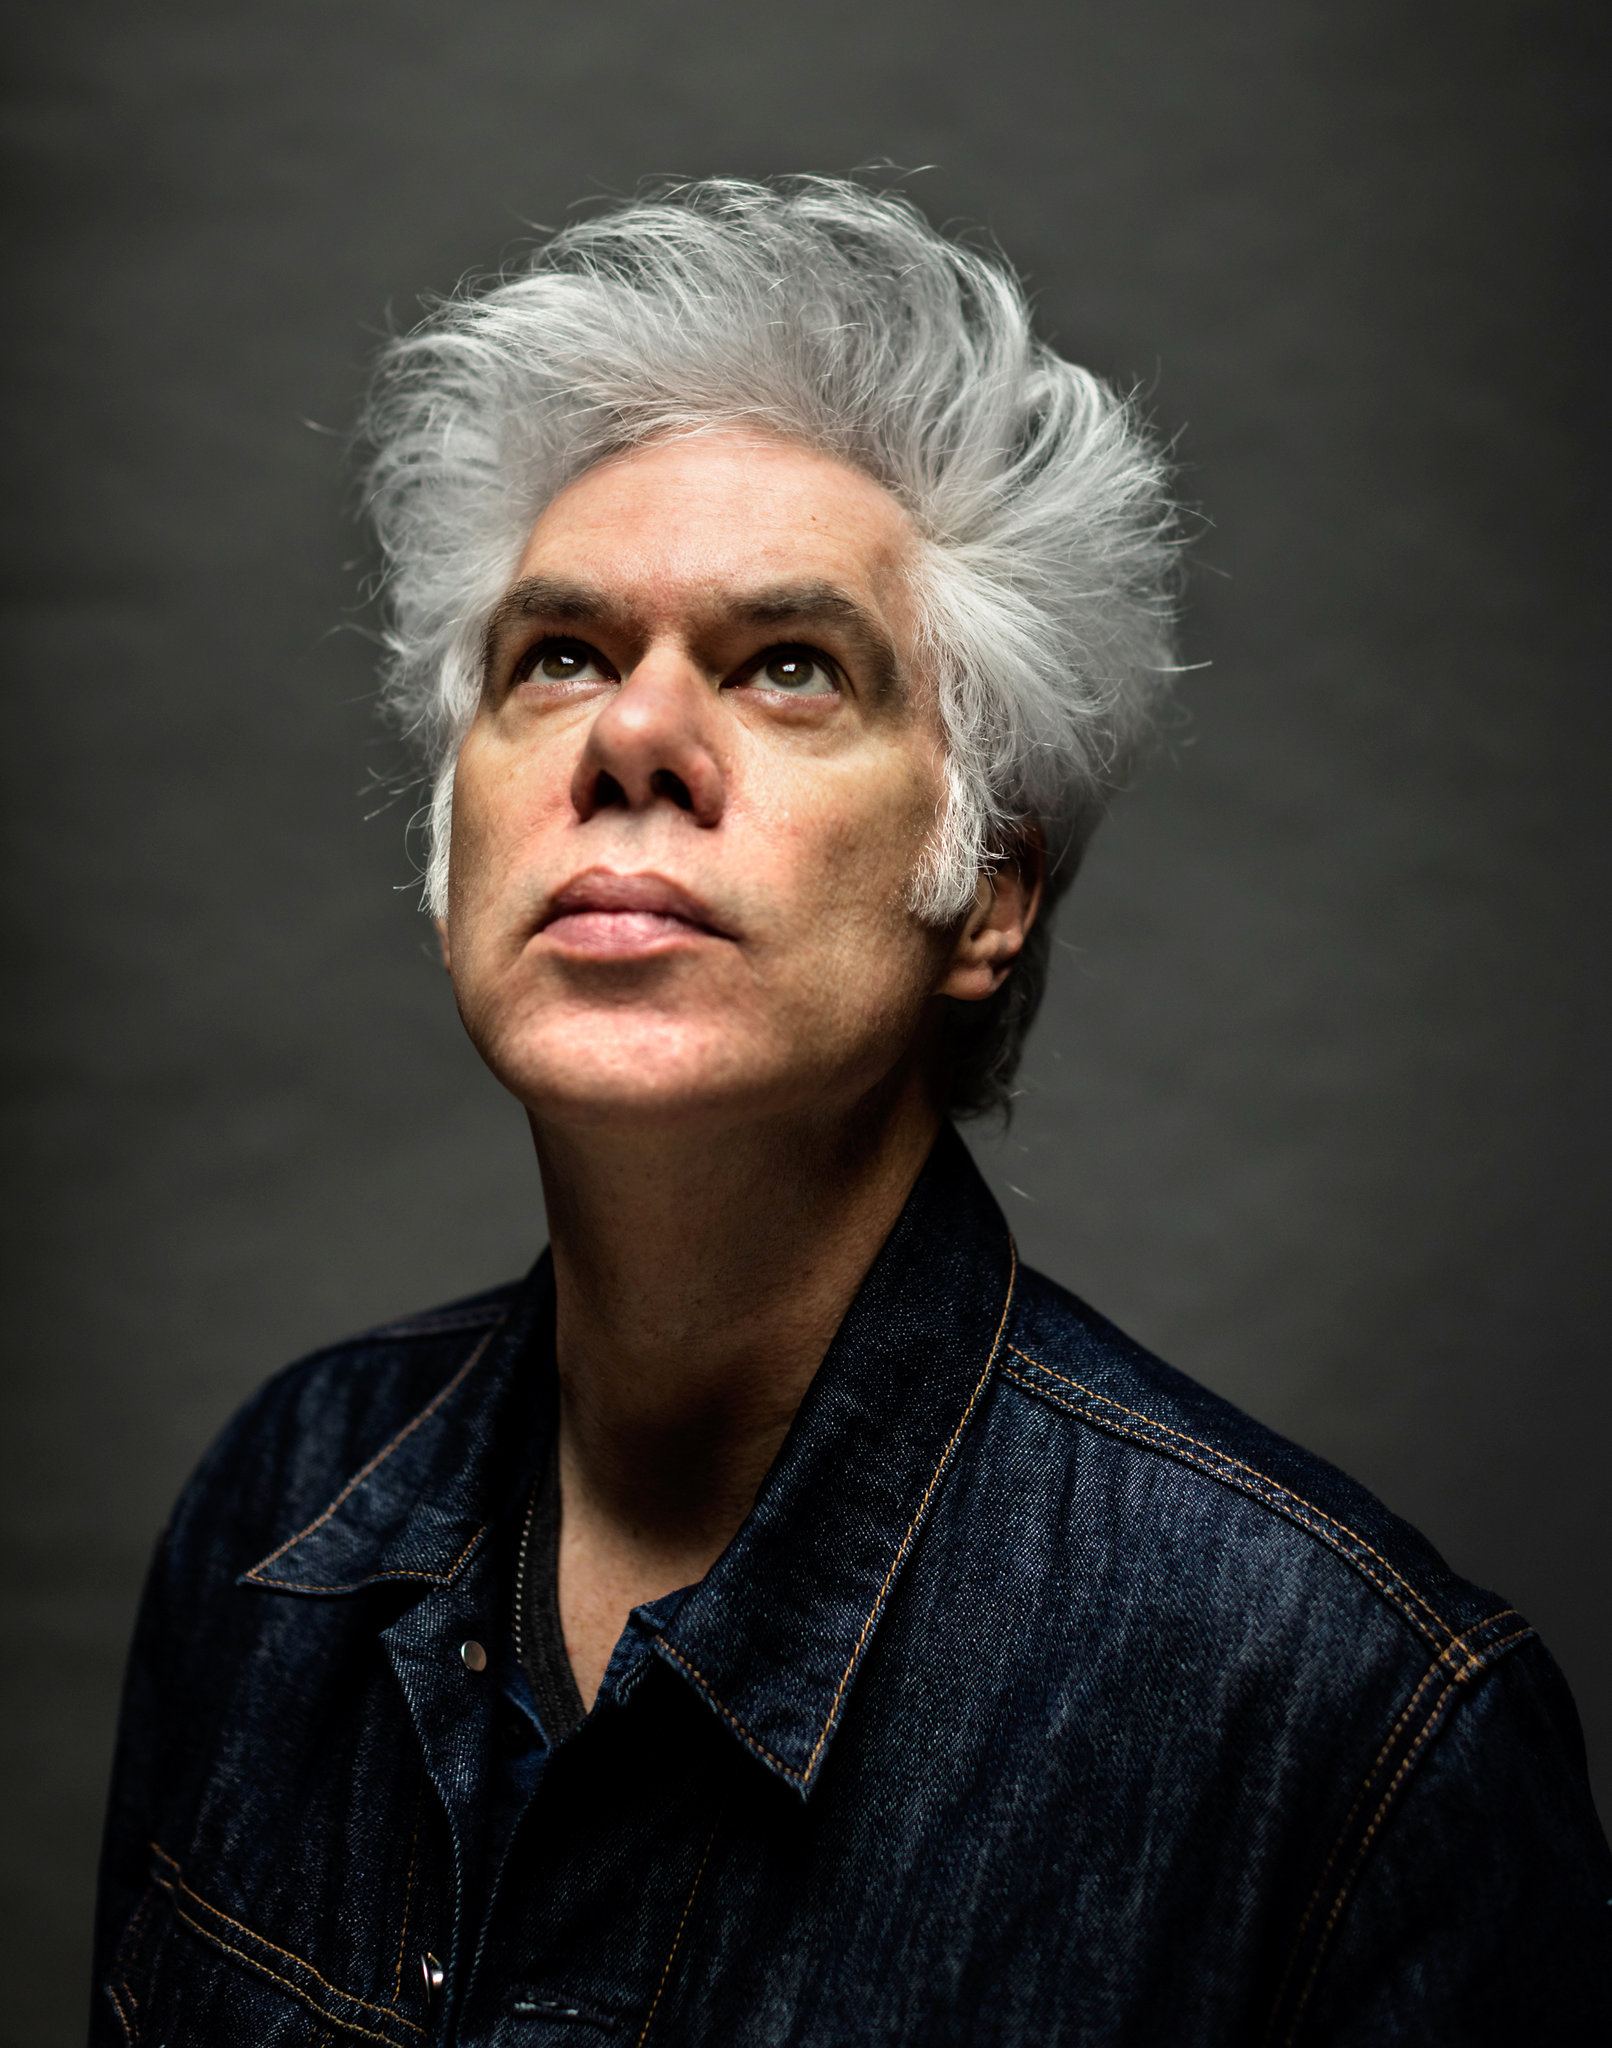 Jim Jarmusch The View Beyond Parallax More Reads For Week Of April 4